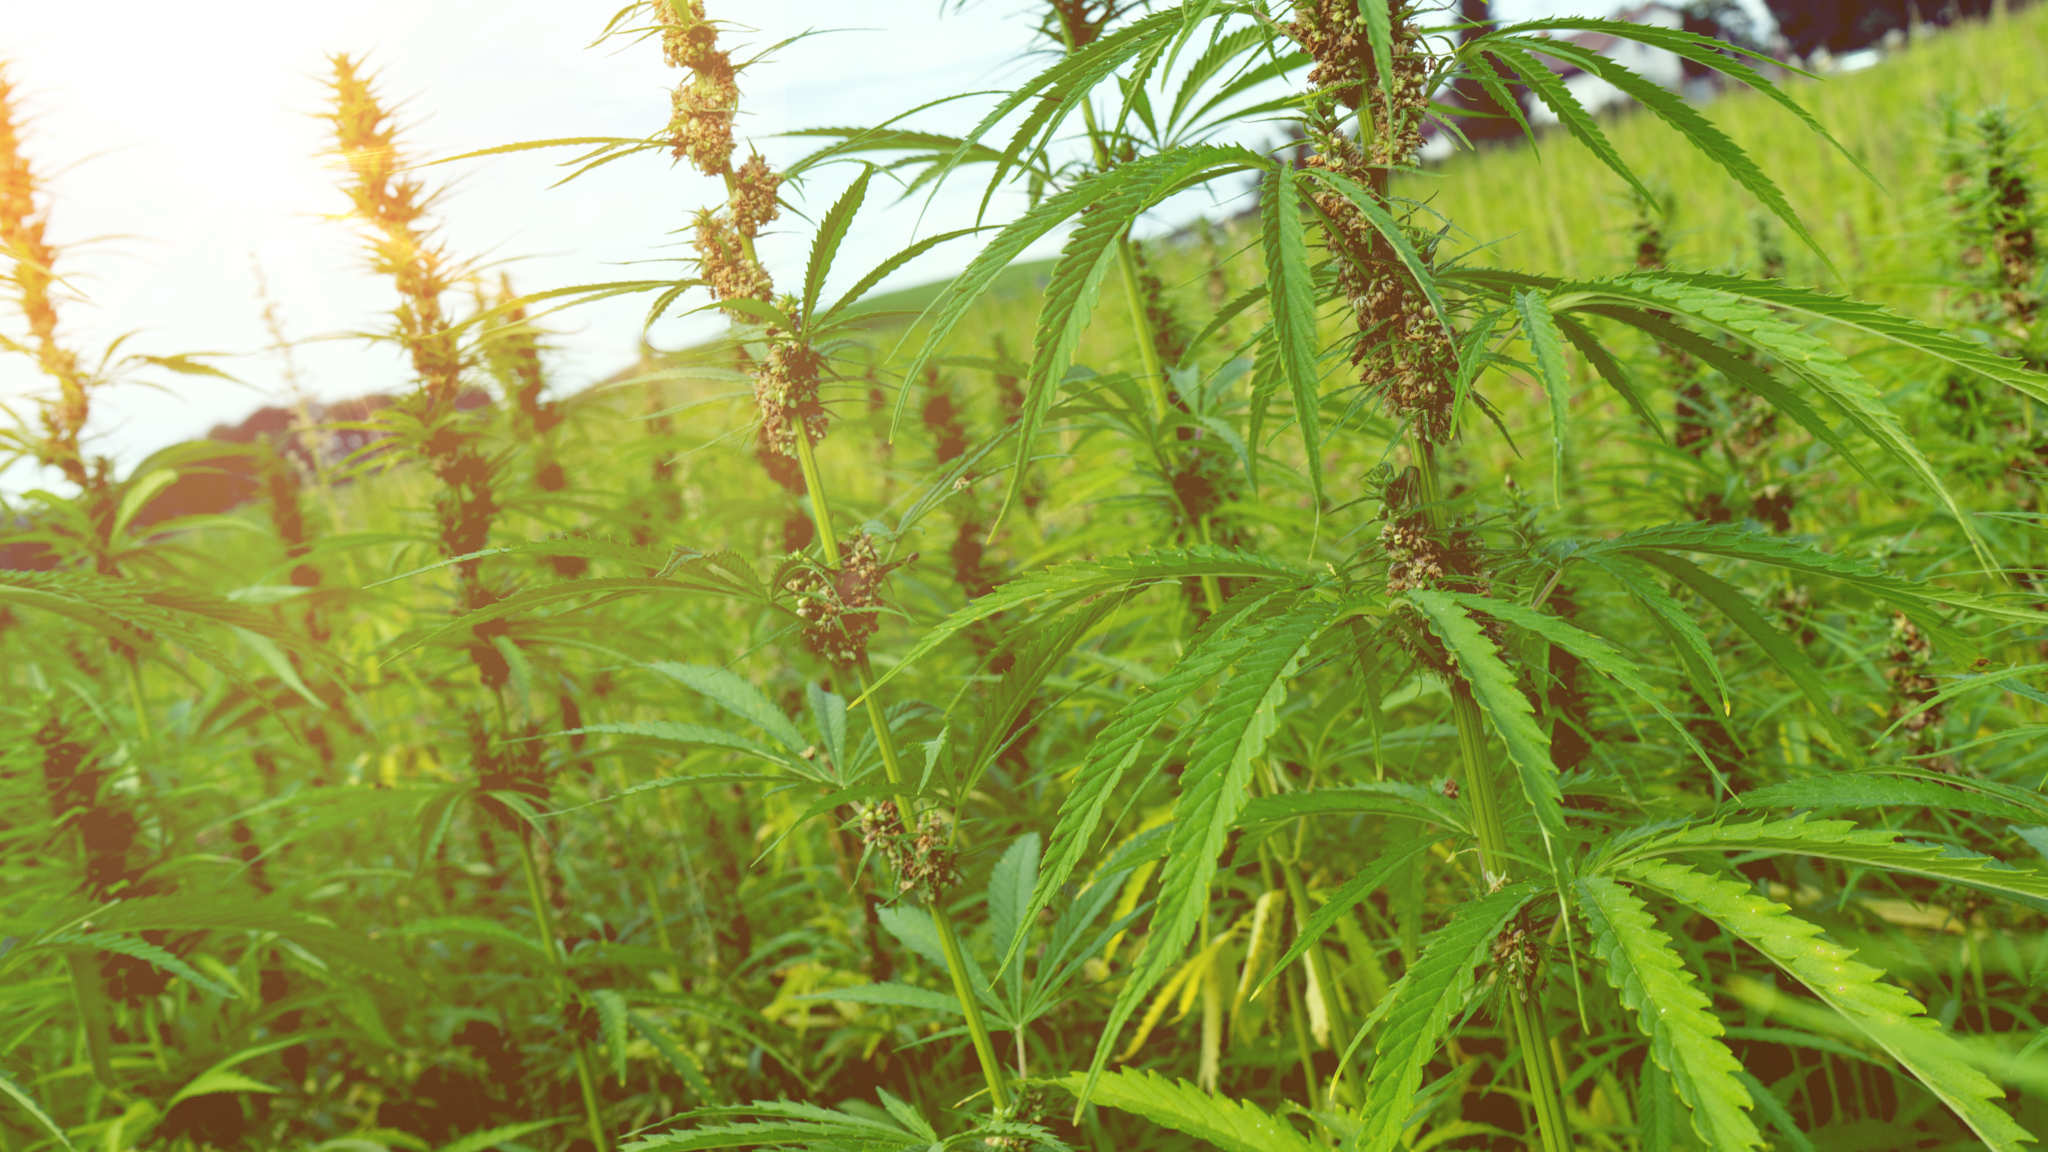 State hemp programs vary widely: some, like Vermont are simple while growers in Wisconsin face challenging complications. Hemp plants grow tall and leafy in a densely packed field.